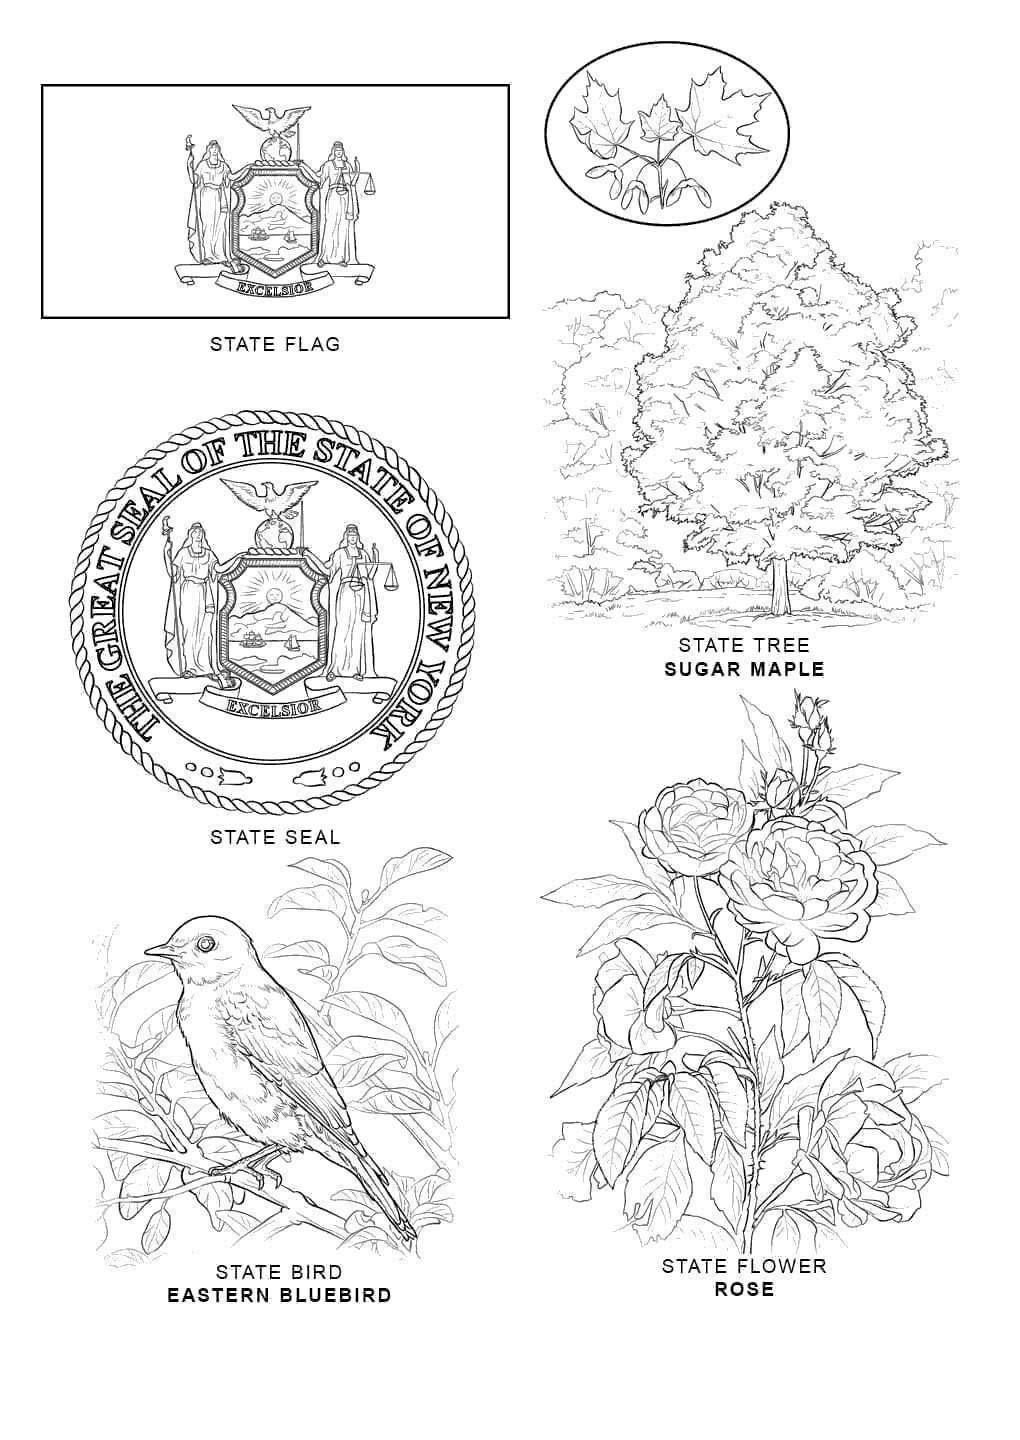 florida animals coloring pages - photo#23